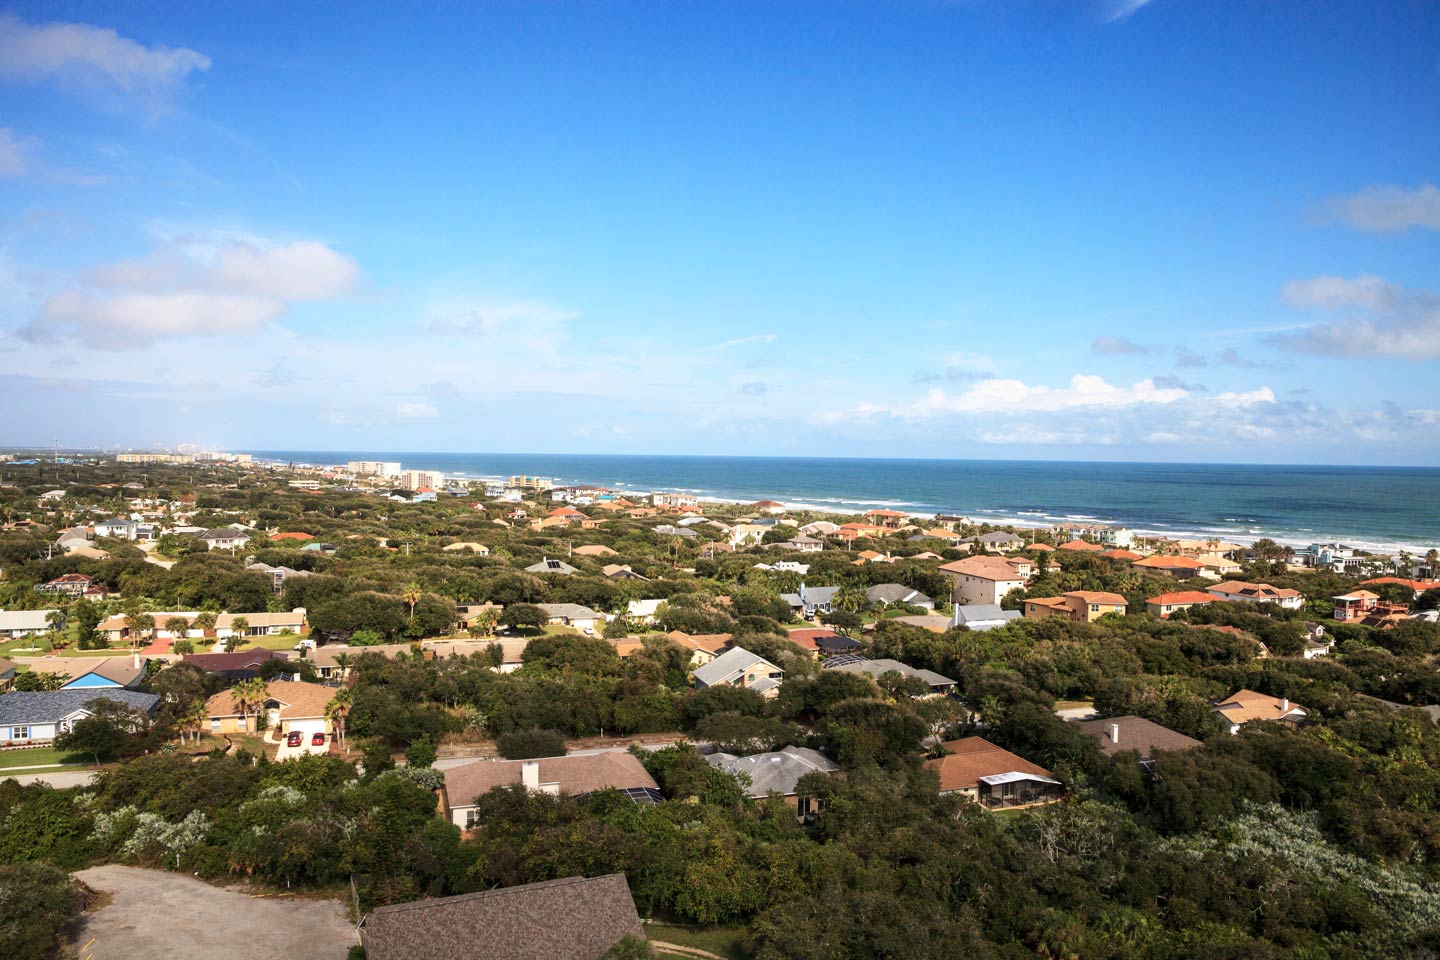 Aerial shot of residential area and waterfront in New Smyrna Beach